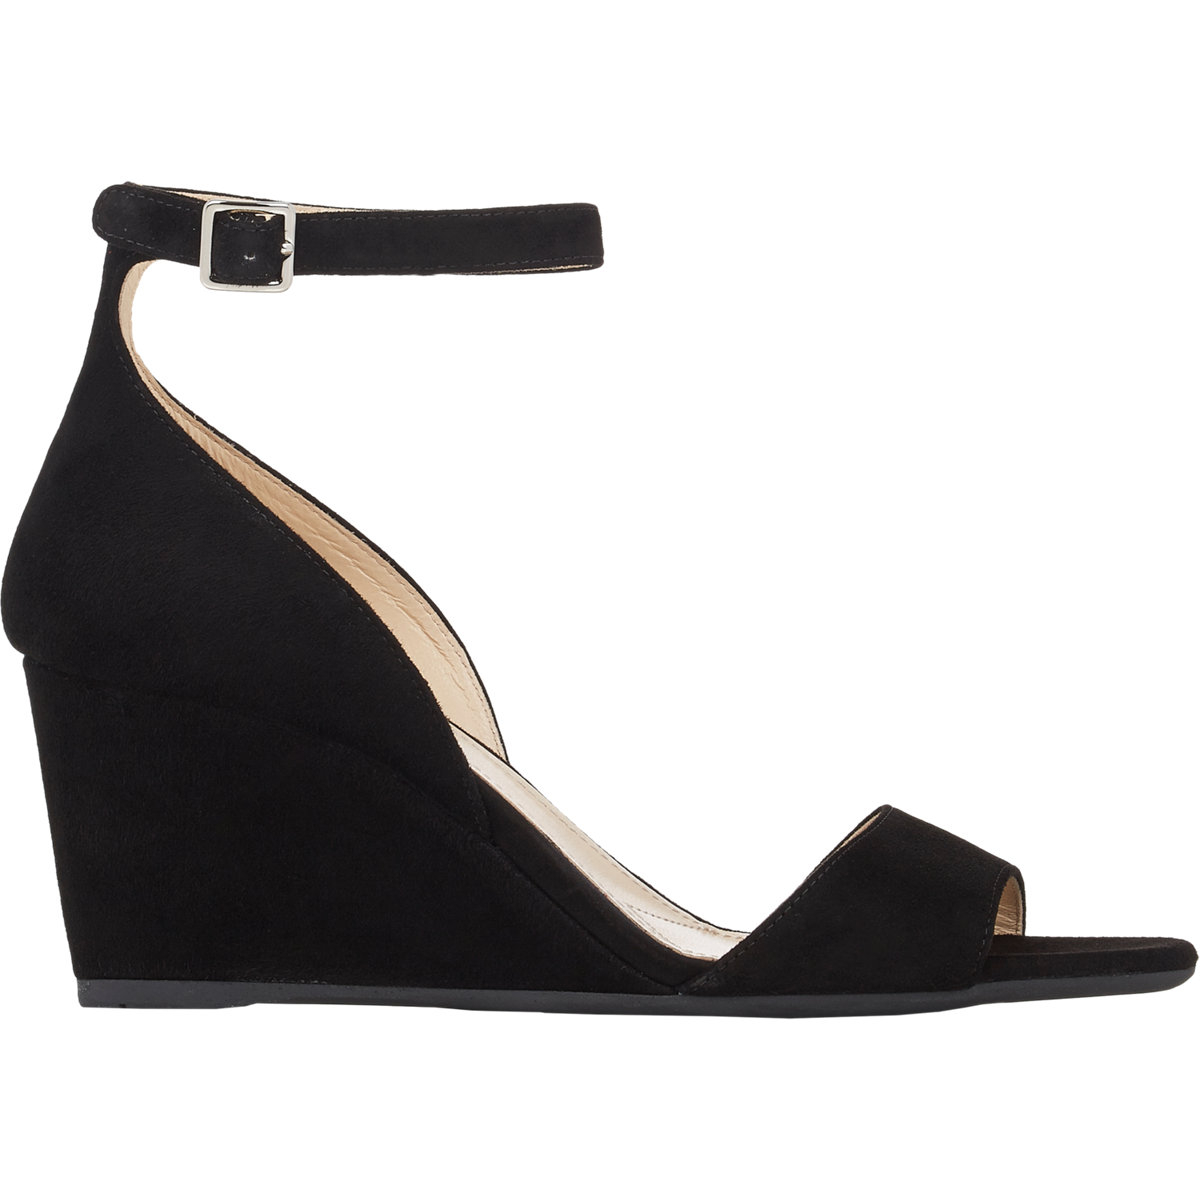 8eae08e477a Lyst - Prada Suede Ankle-strap Wedge Sandals in Black